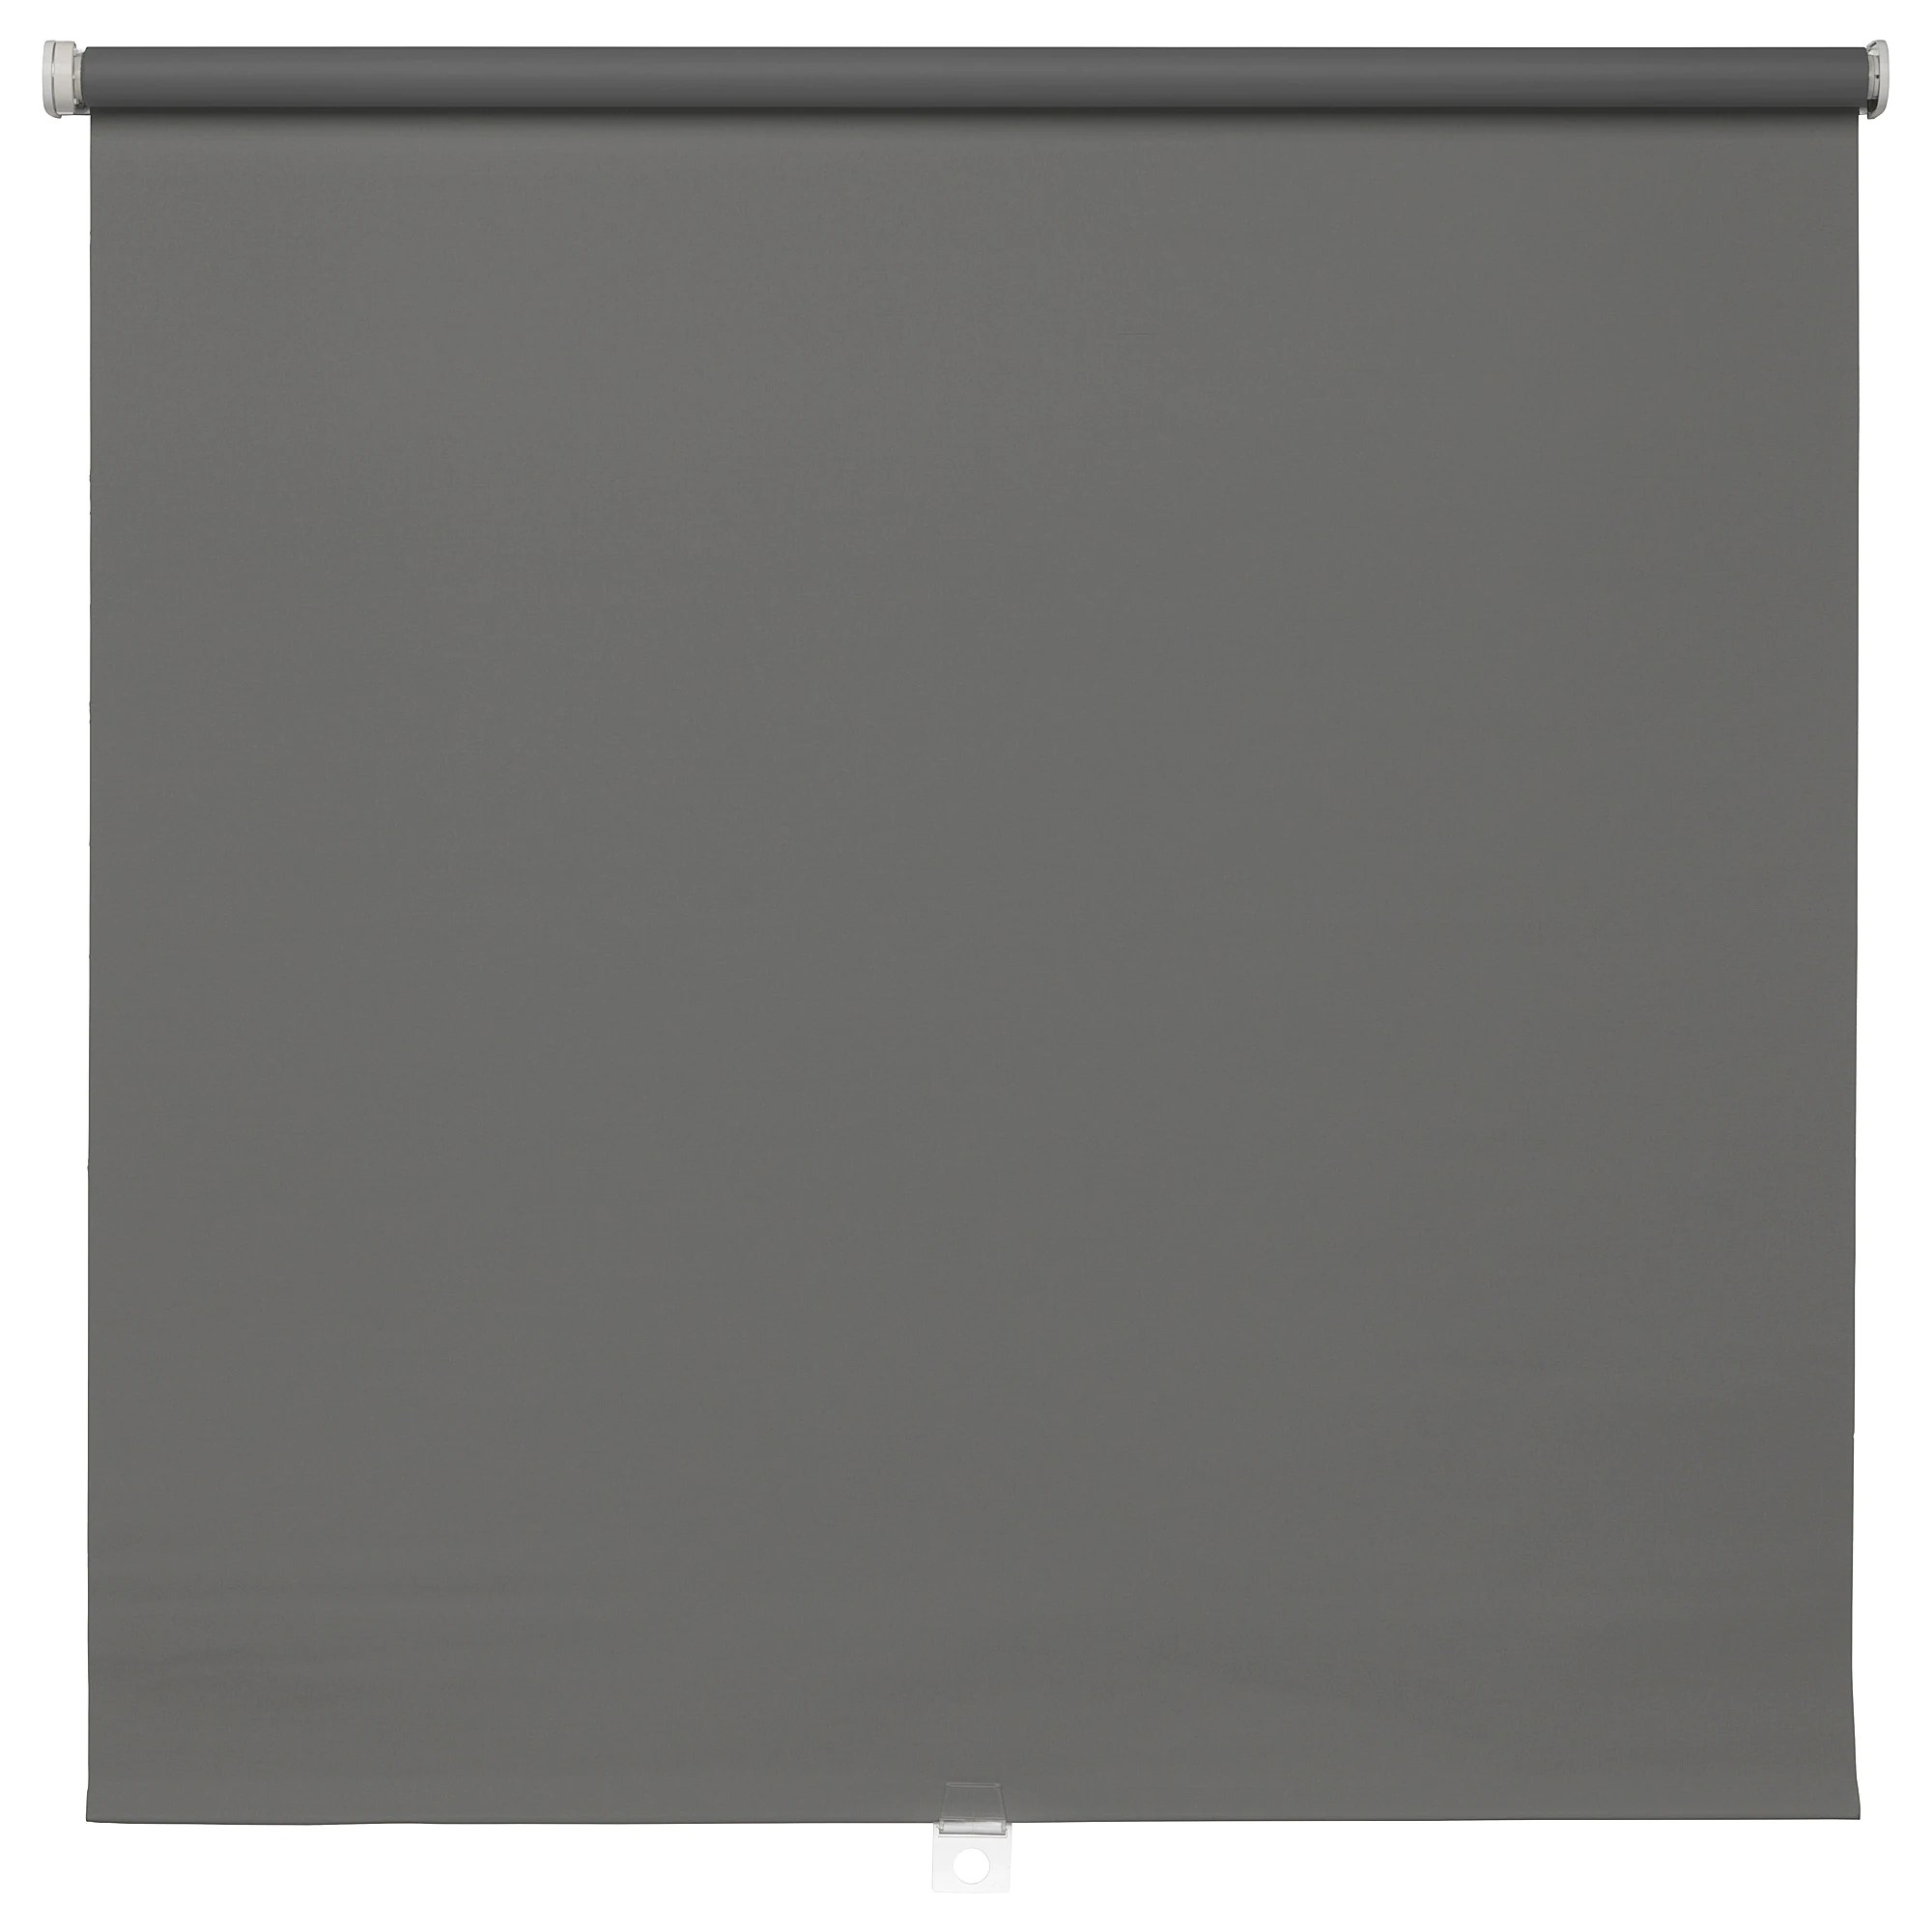 36 Inch Room Darkening Curtains Tupplur Blackout Roller Blind Gray